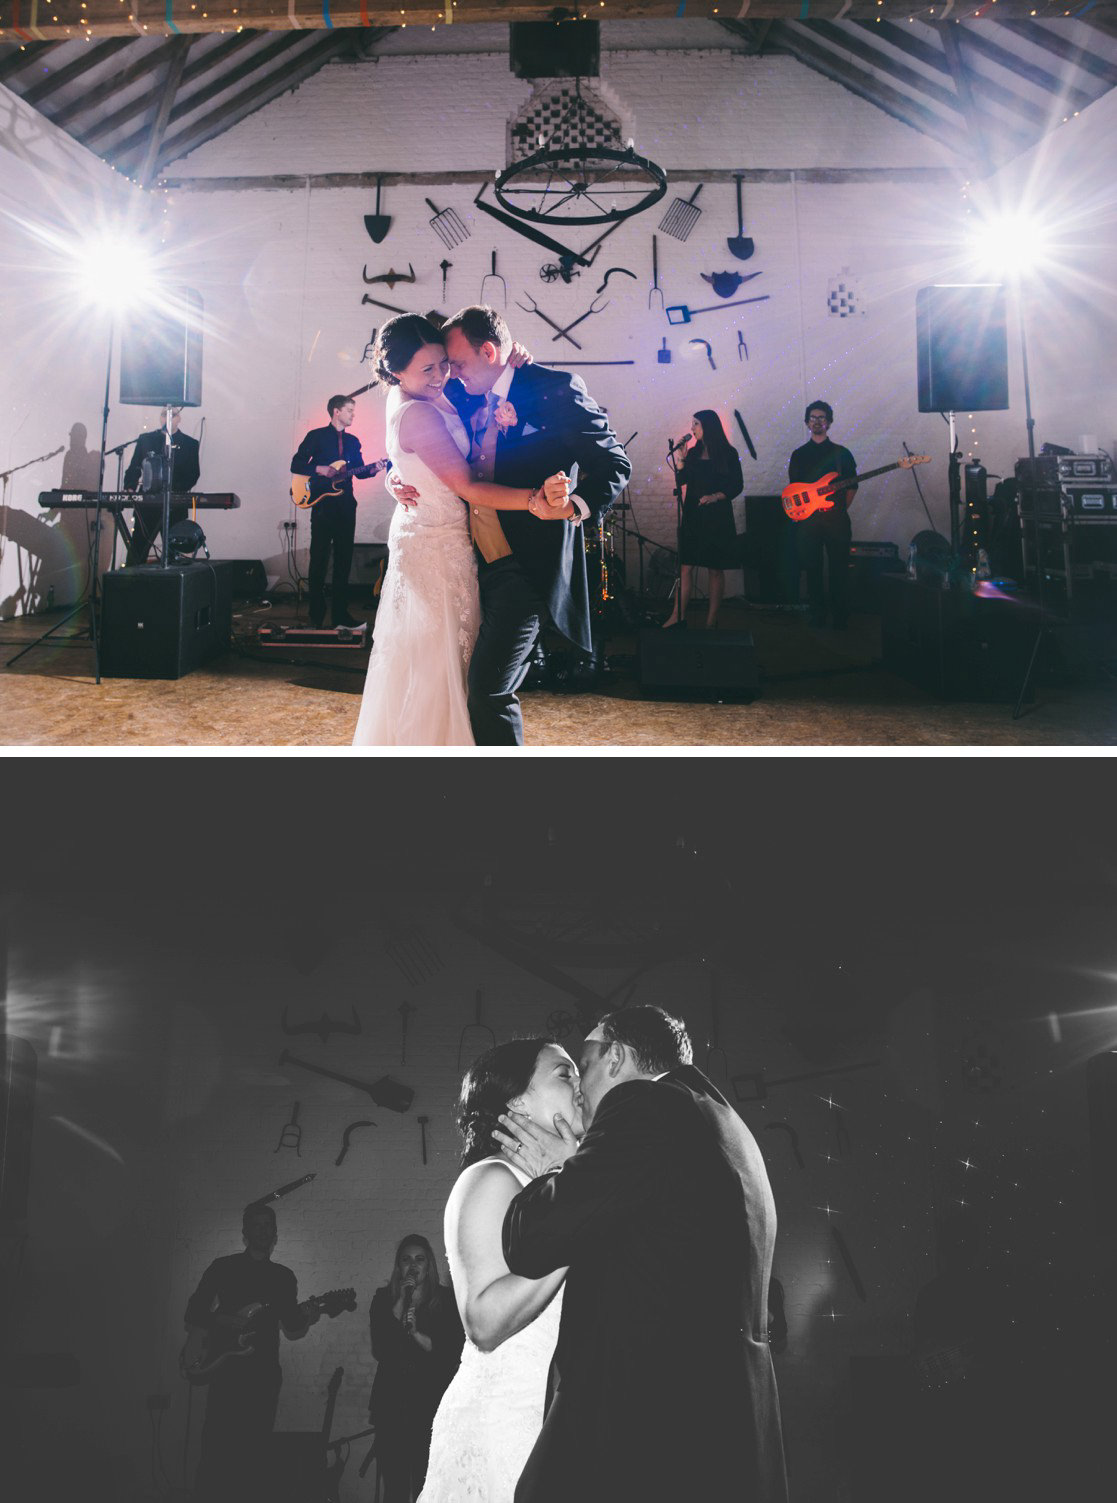 Rob-And-Kate-Wedding-Photography-The-Barn-At-Woodlands-Stokesby-By-Norfolk-And-Suffolk-Wedding-Photographer-James-Powell-045.jpg